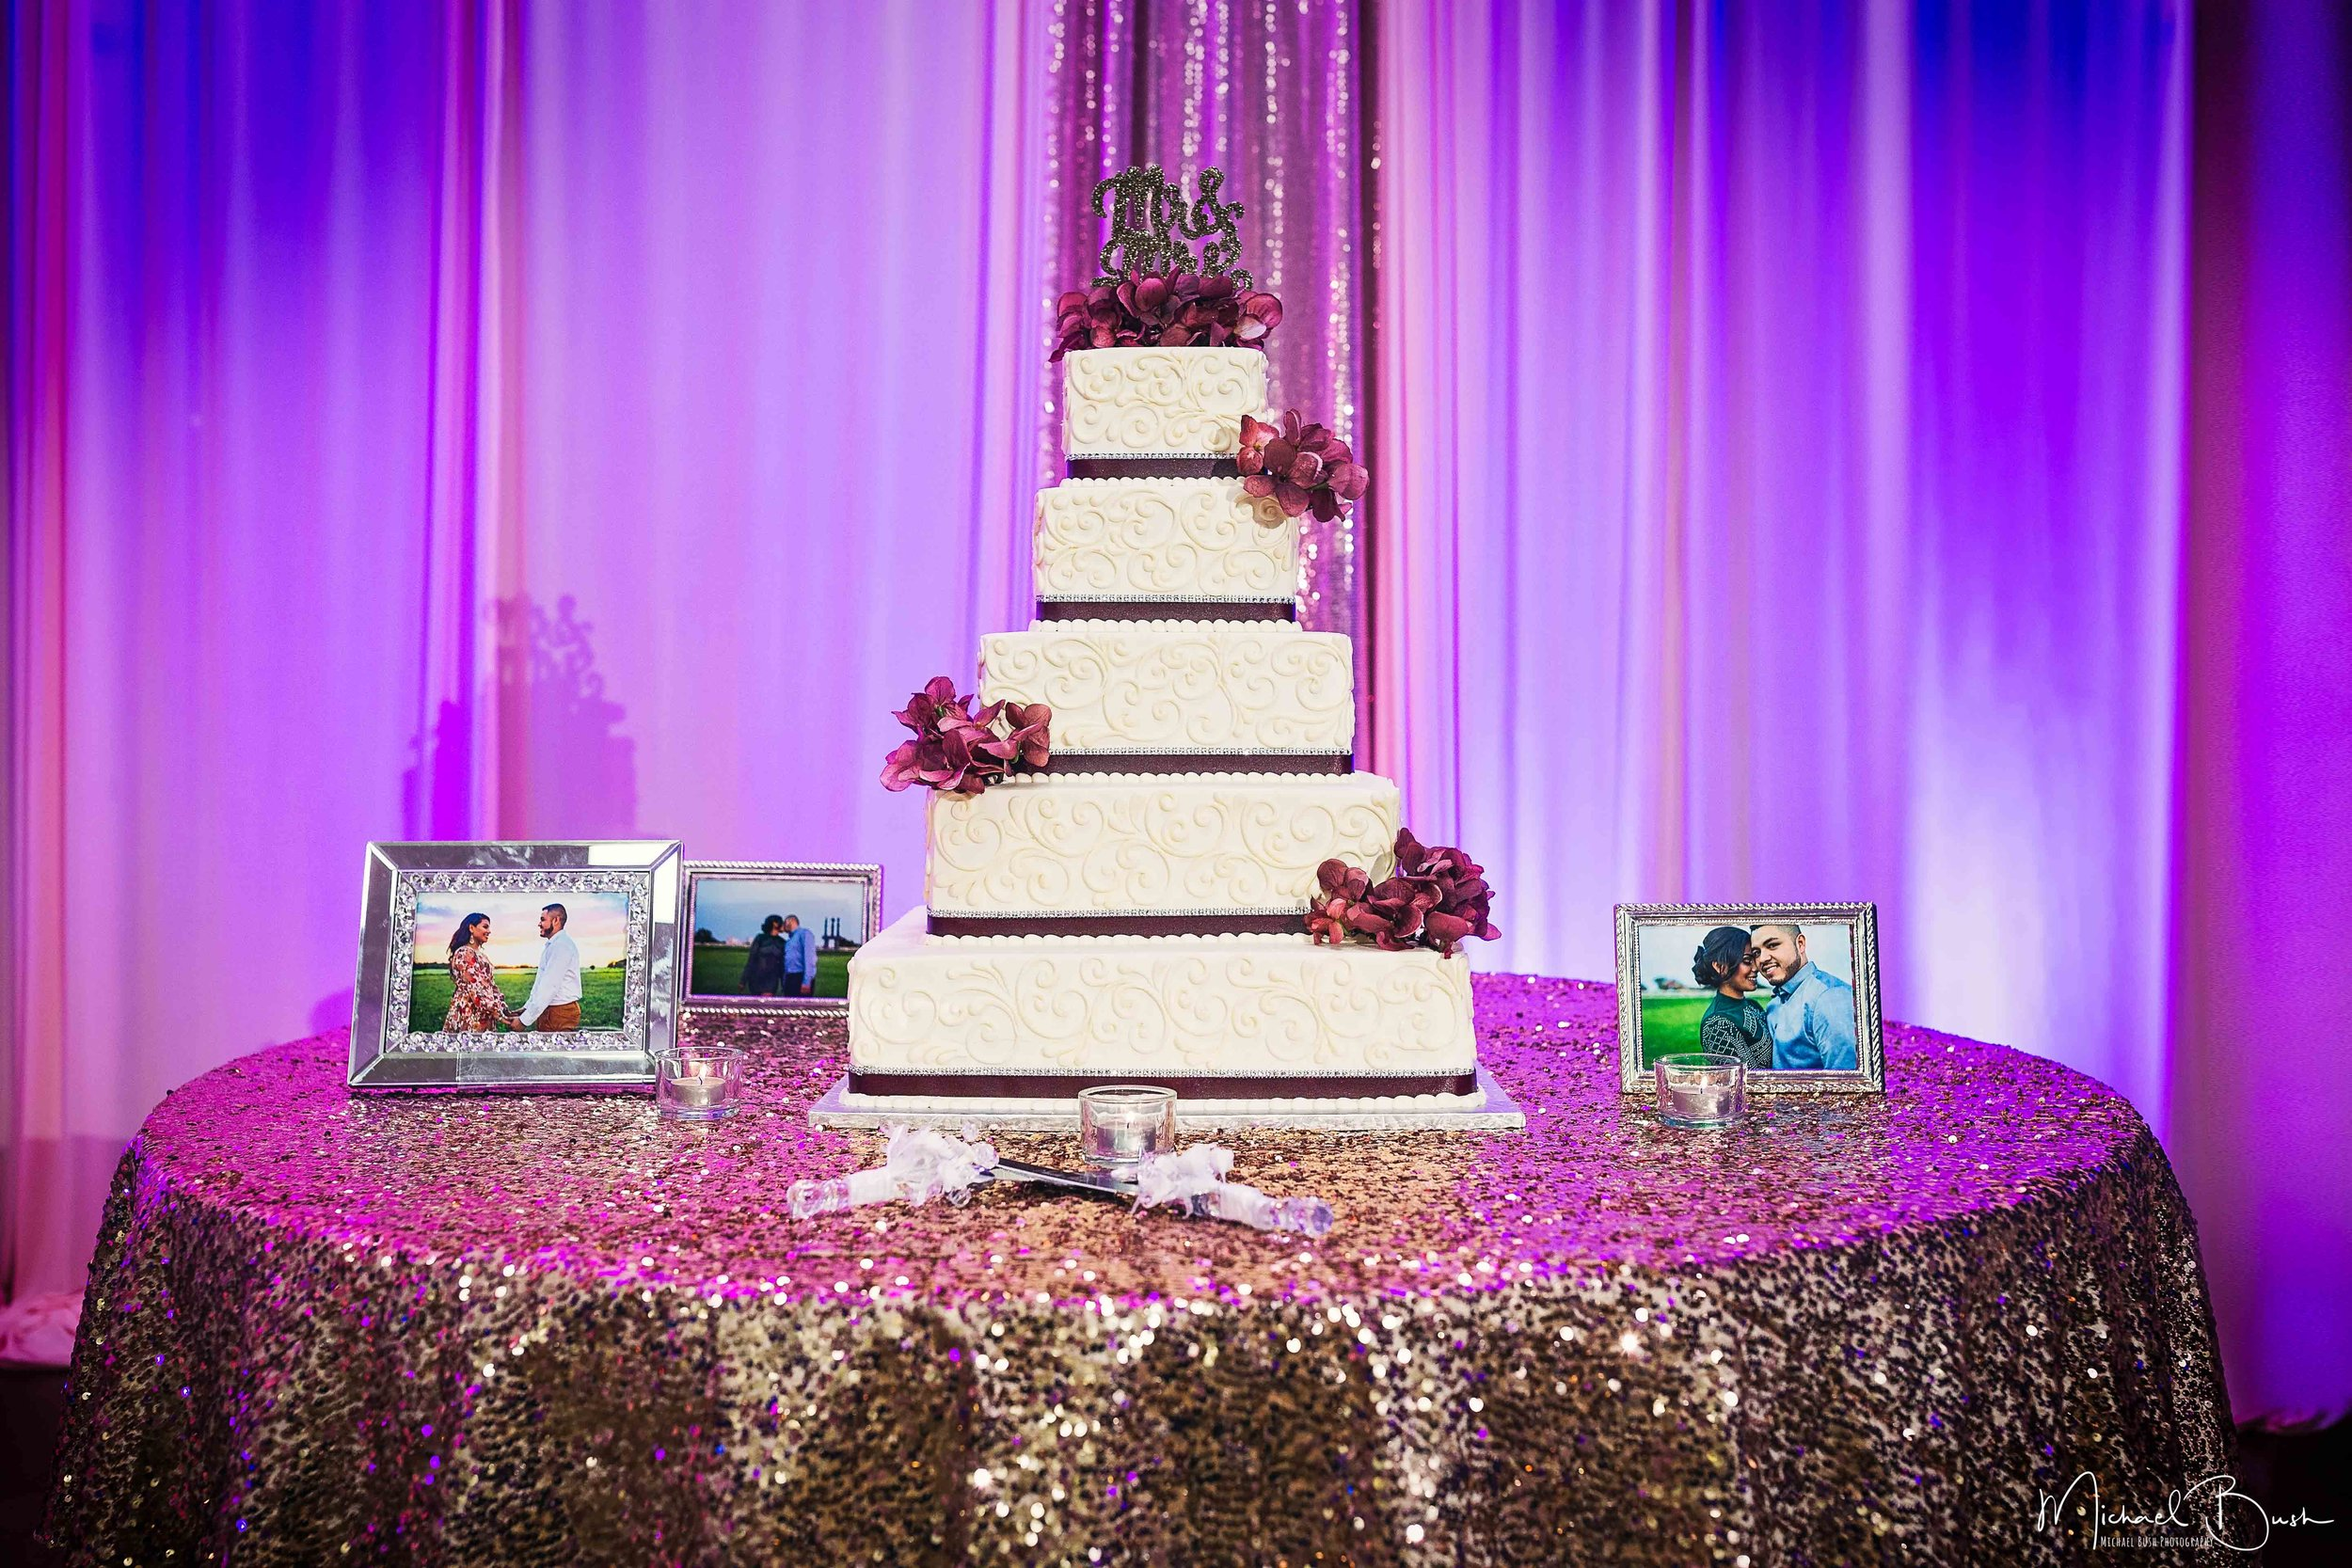 Wedding-Reception-Detials-Fort-Worth-Venue-wedding-cake-cakes.jpg